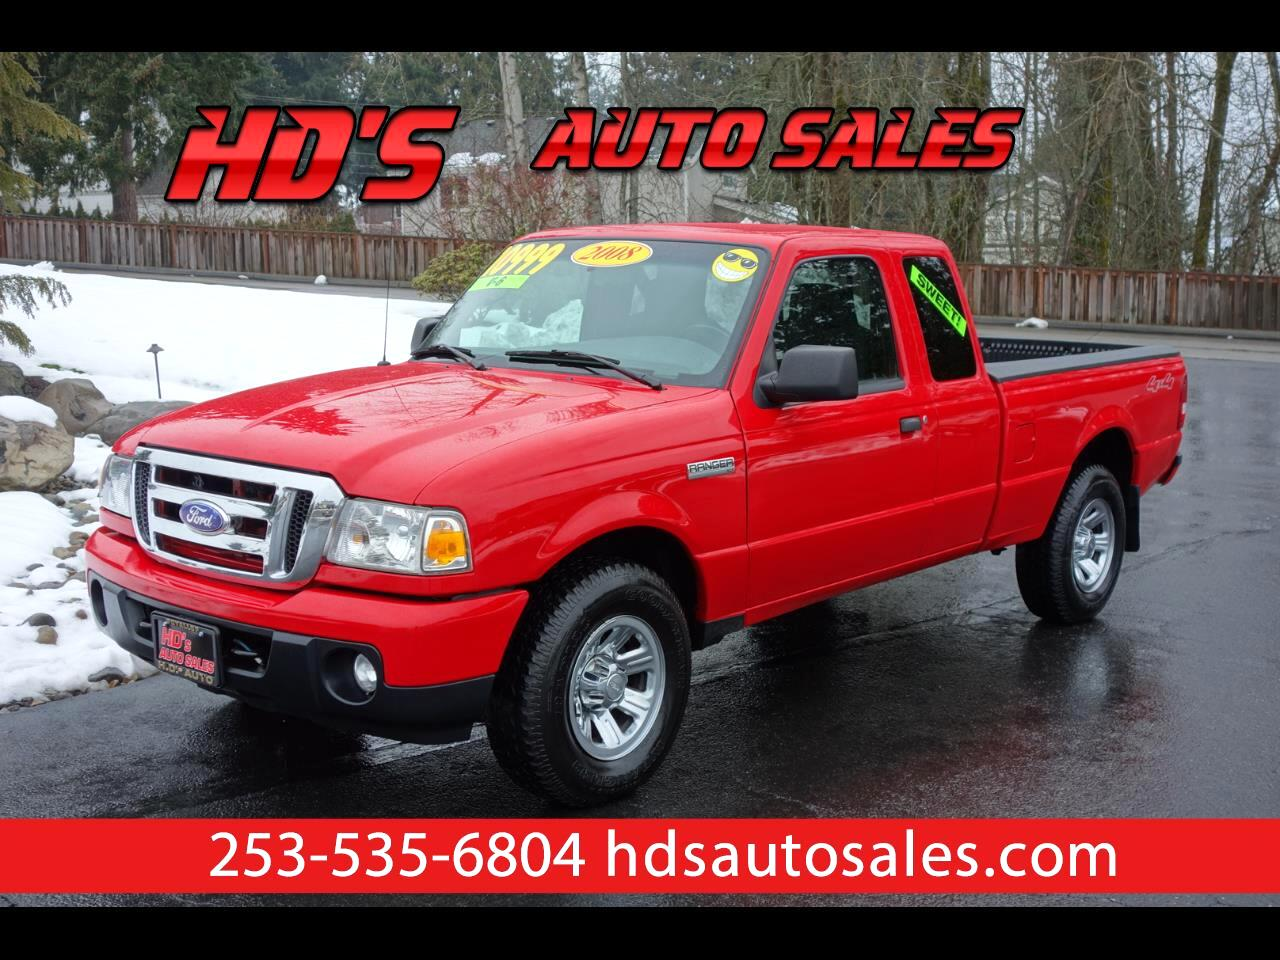 2008 Ford Ranger XLT SuperCab 4 Door 4WD